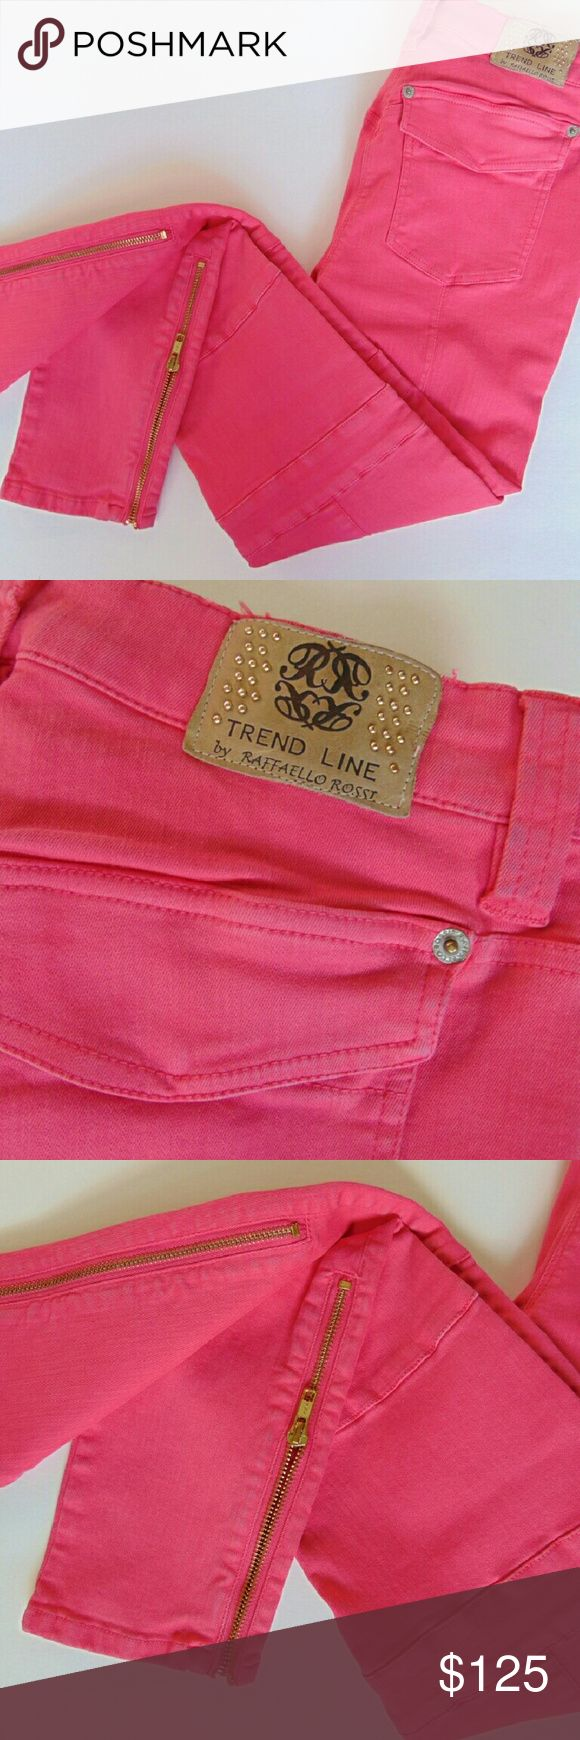 Raffaello Rossi Trend Line Collection Sinty Jeans These moto inspired slim leg jeans are from the Raffaello Rossi Spring/Summer 2016  collection. European Size 36. Raffaello Rossi Jeans Skinny